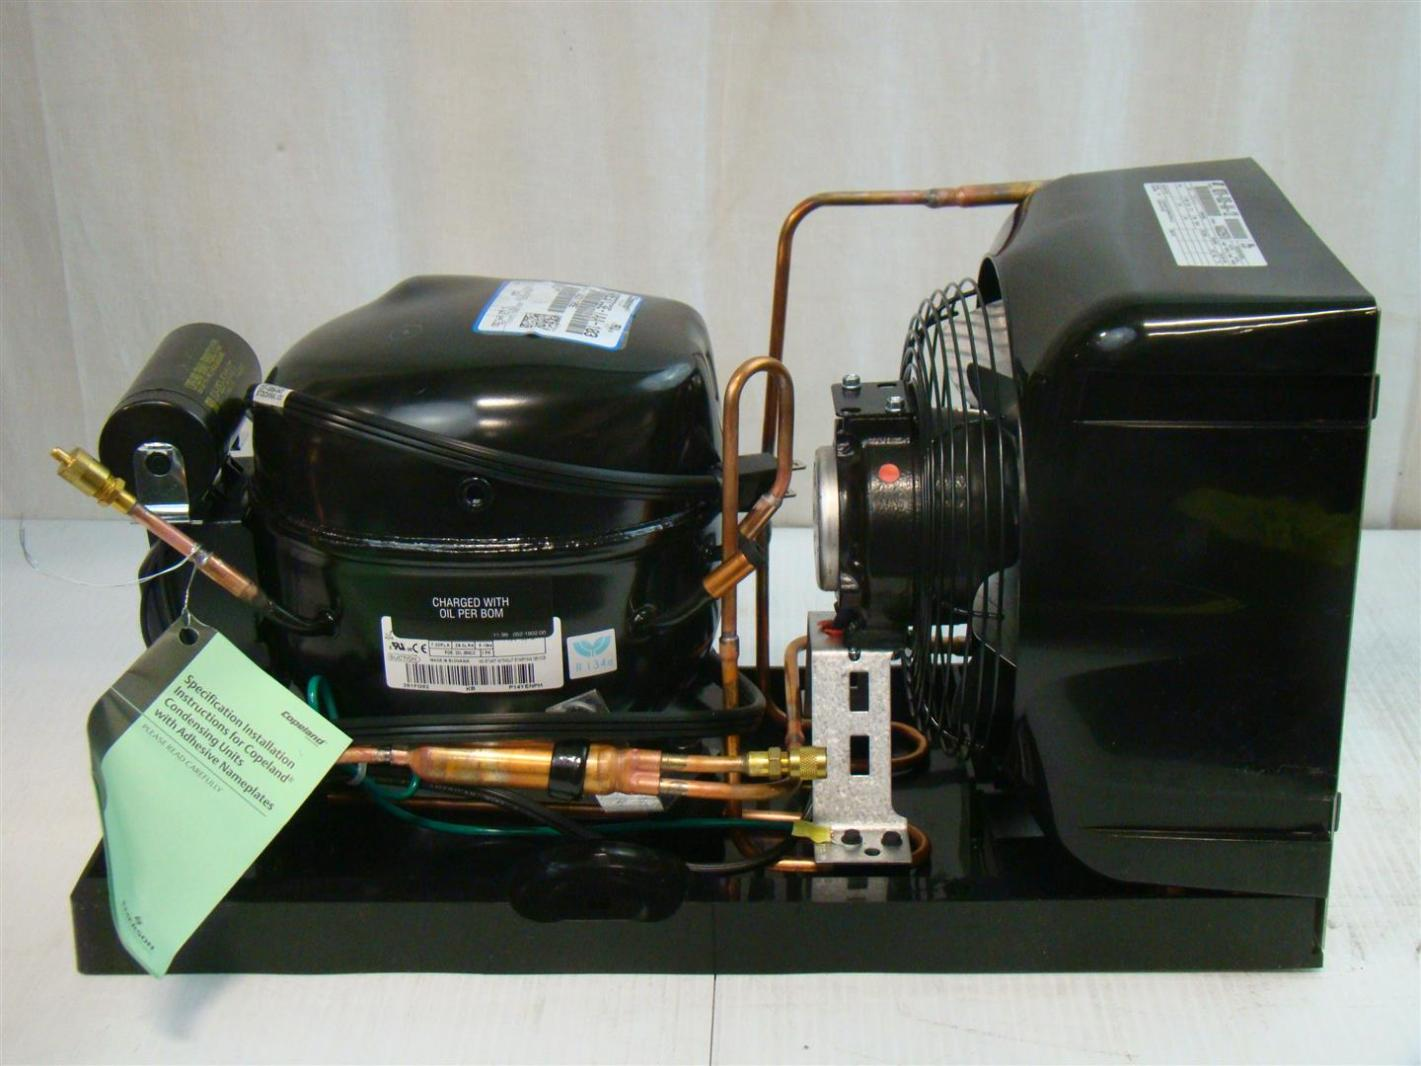 Details about Copeland Hermetic Condensing Unit 115V 1/3HP M2TH 0035  #694629